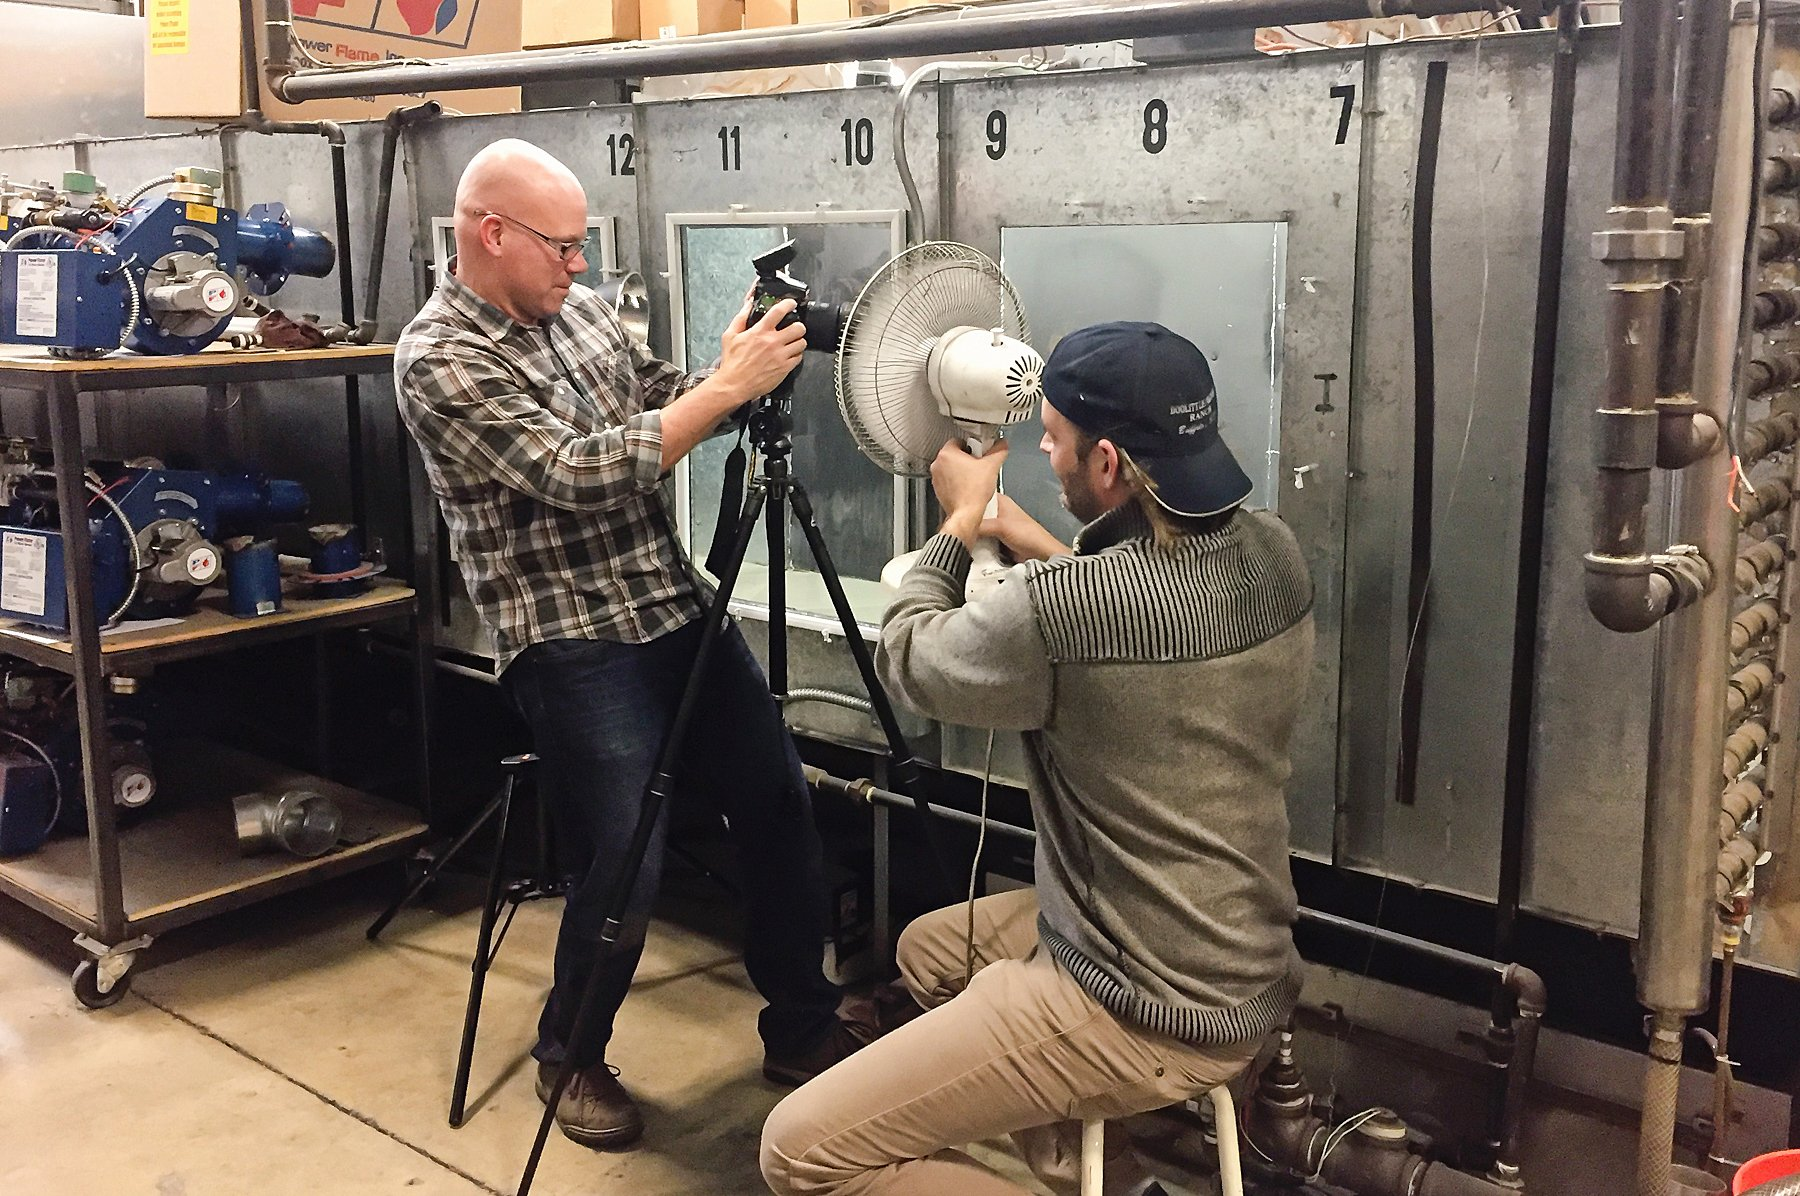 Dean and assistant on industrial photo shoot in St Paul, Minnesota